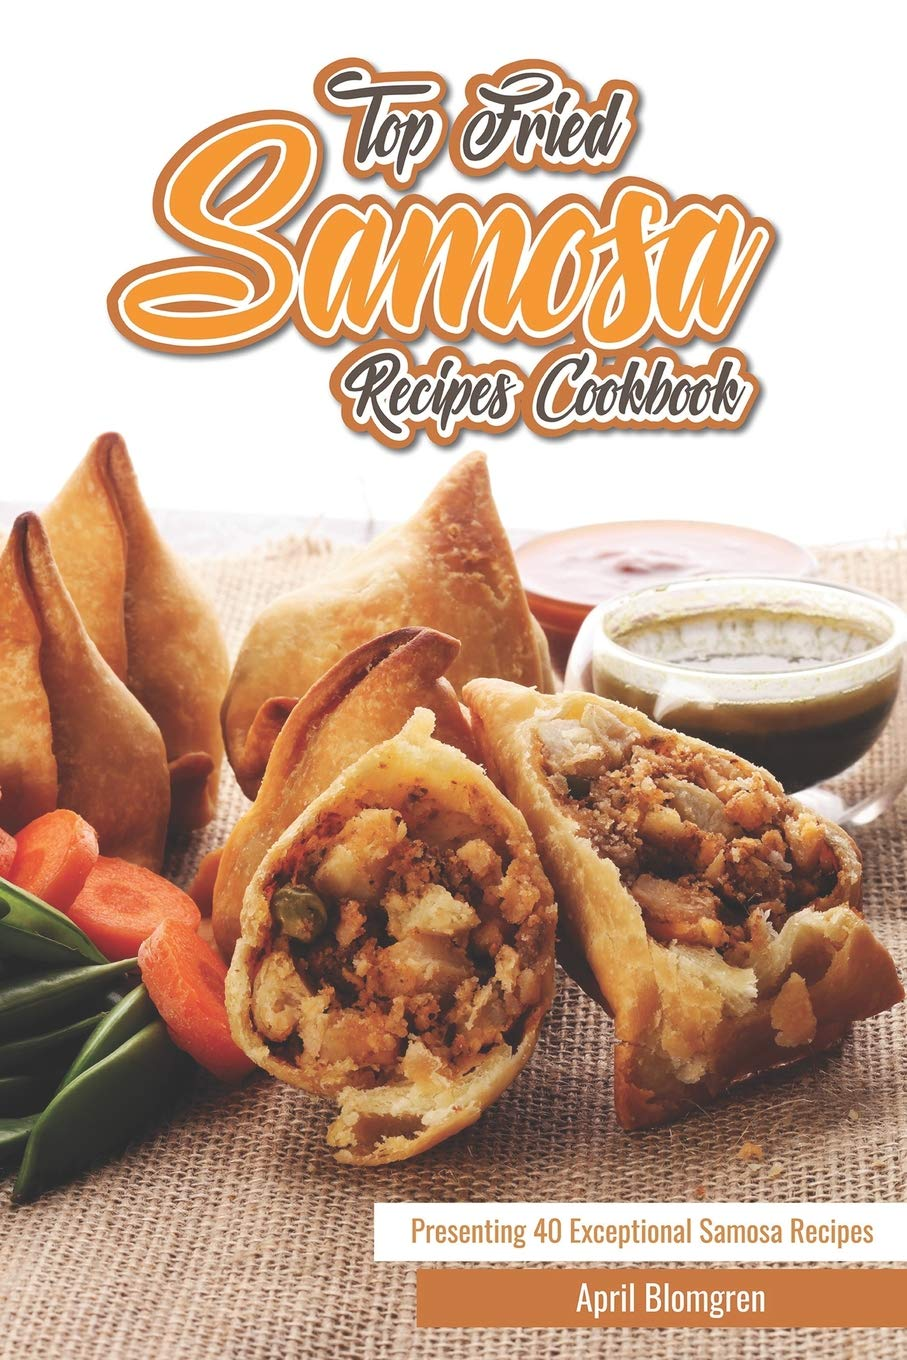 Top Fried Samosa Recipes Cookbook: Presenting 40 Exceptional Samosa Recipes